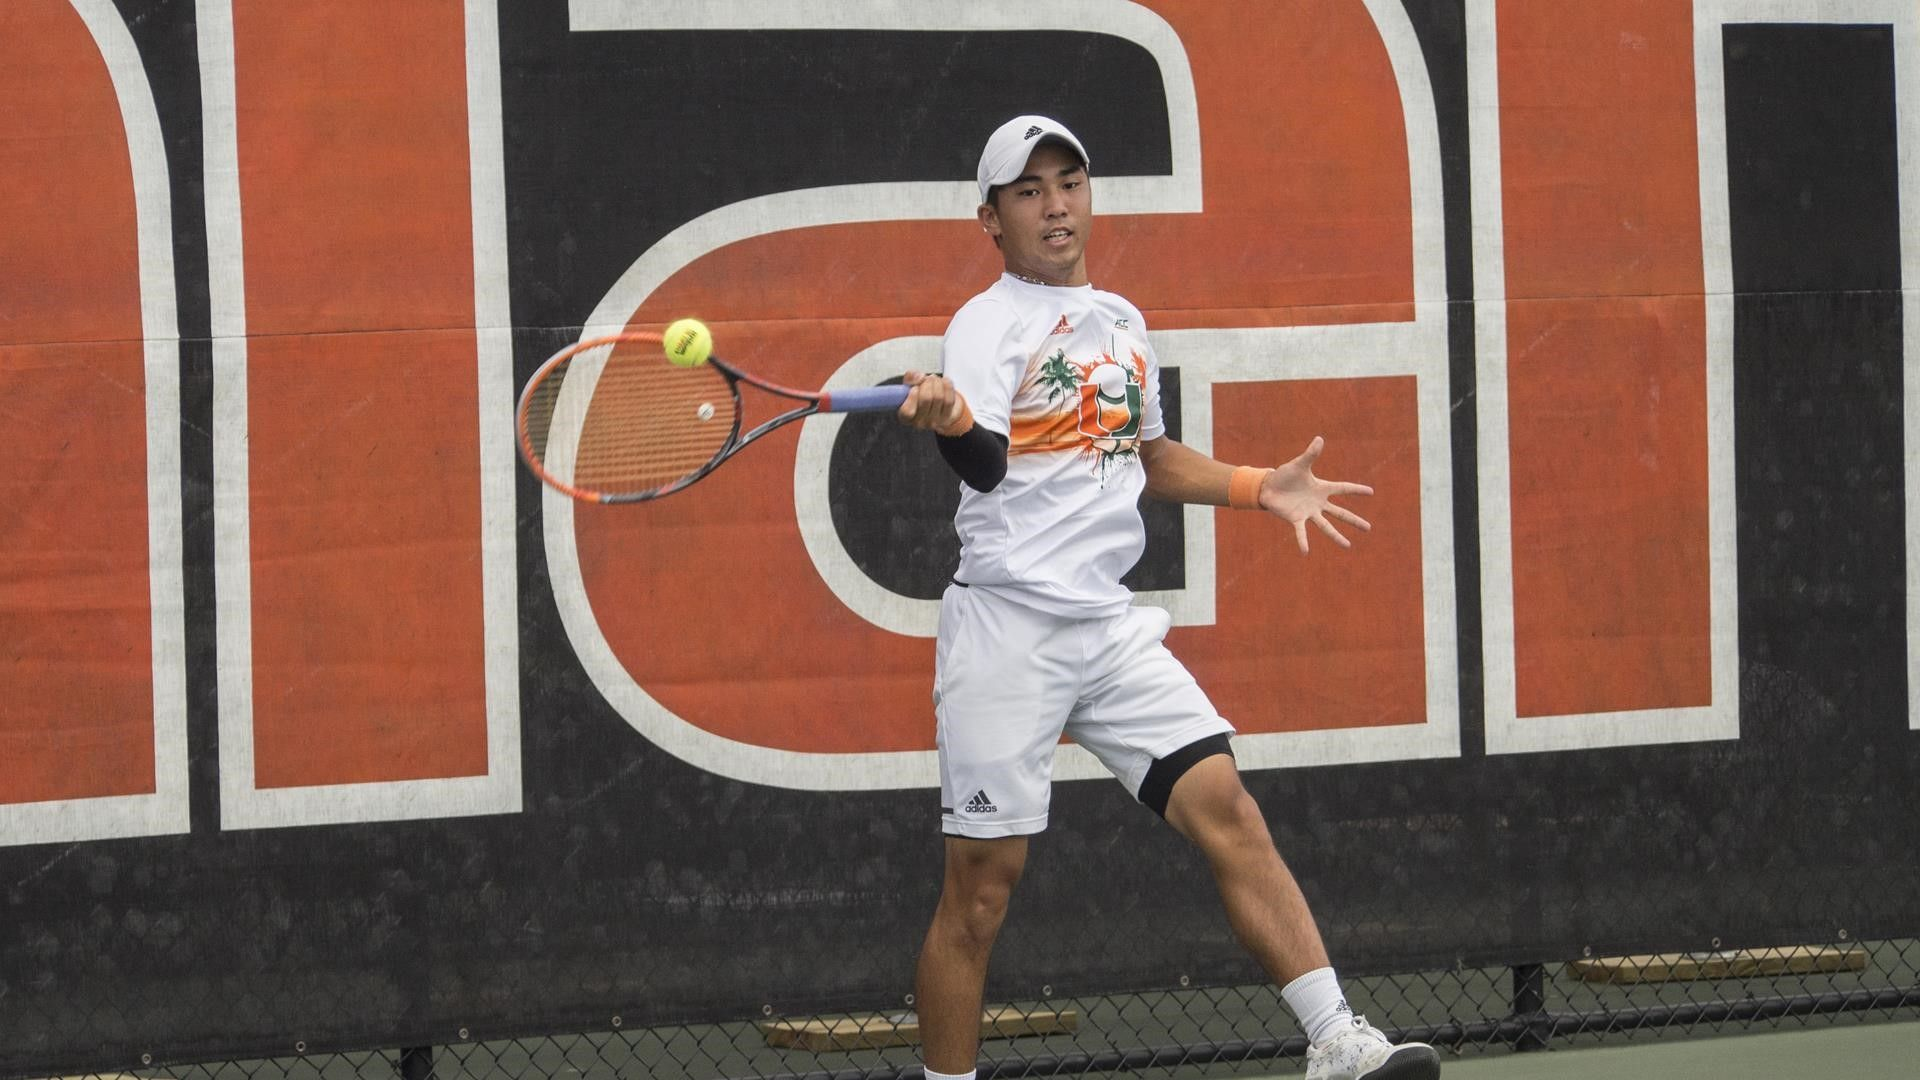 Shimamoto and Aycart Capture Doubles Title